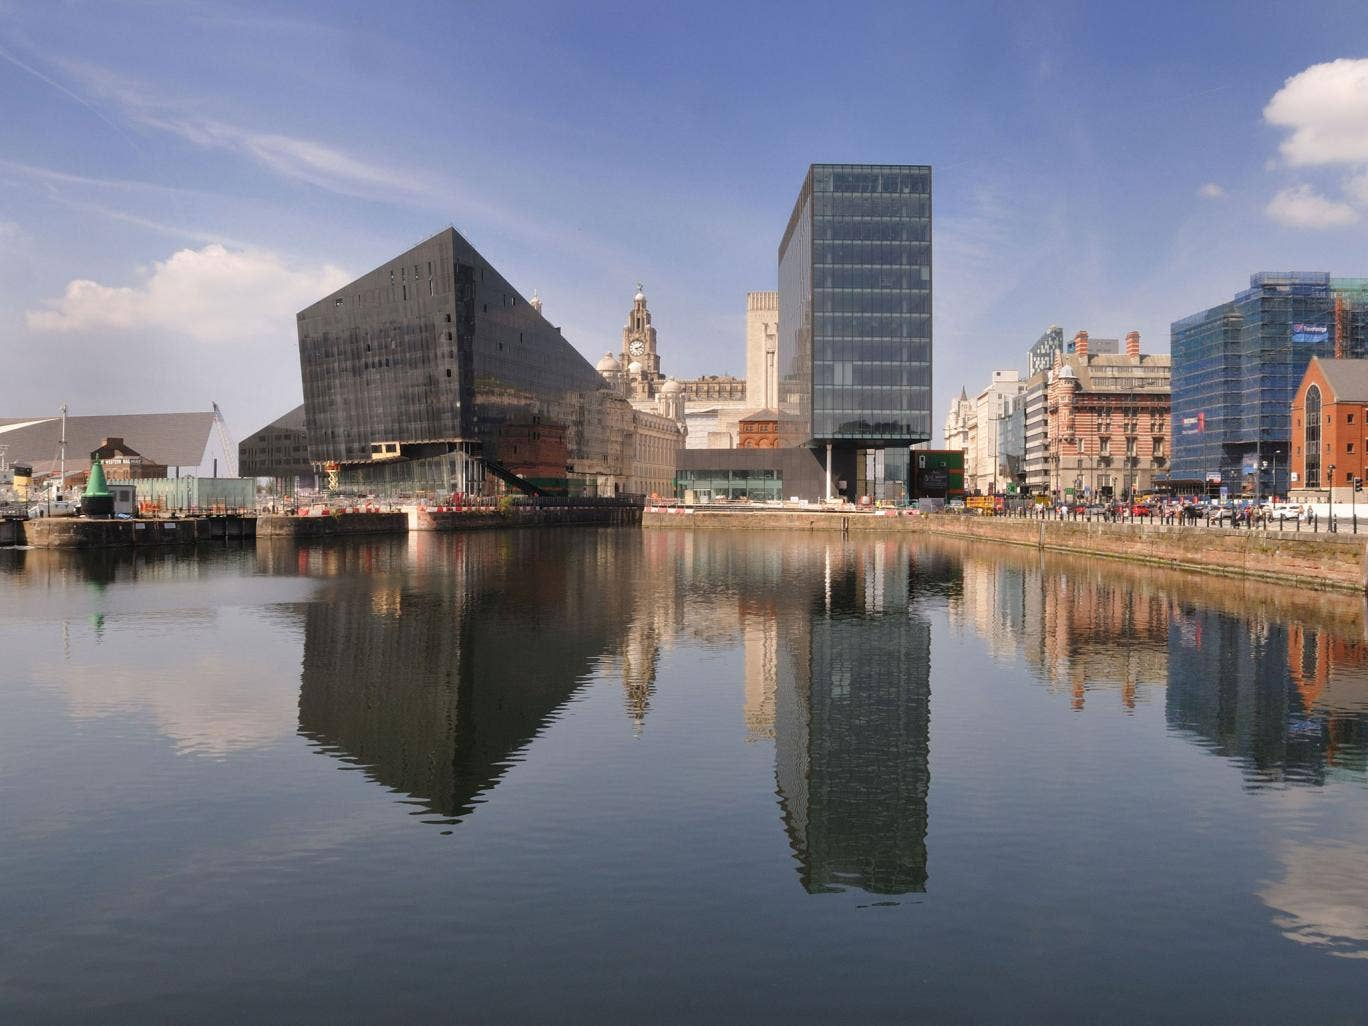 Rescue says five local authorities around Liverpool, home of the World Heritage waterfront, no longer receive architectural heritage advice